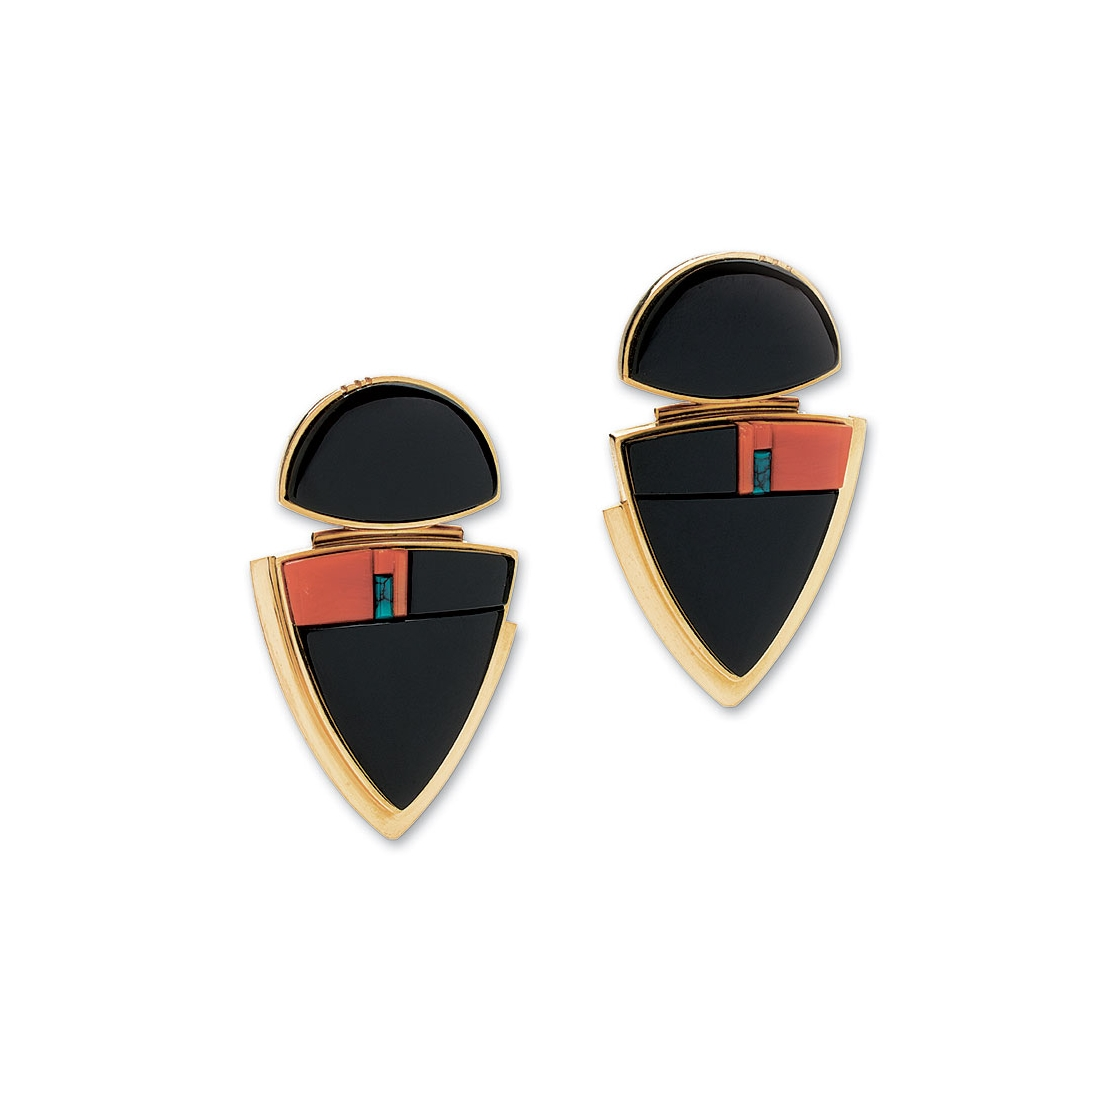 BLACK JADE EARRINGS of coral, turquoise and eighteen karat gold, 3.2 centimeters long, 2003-2004.  Collection of Joan Borinstein.